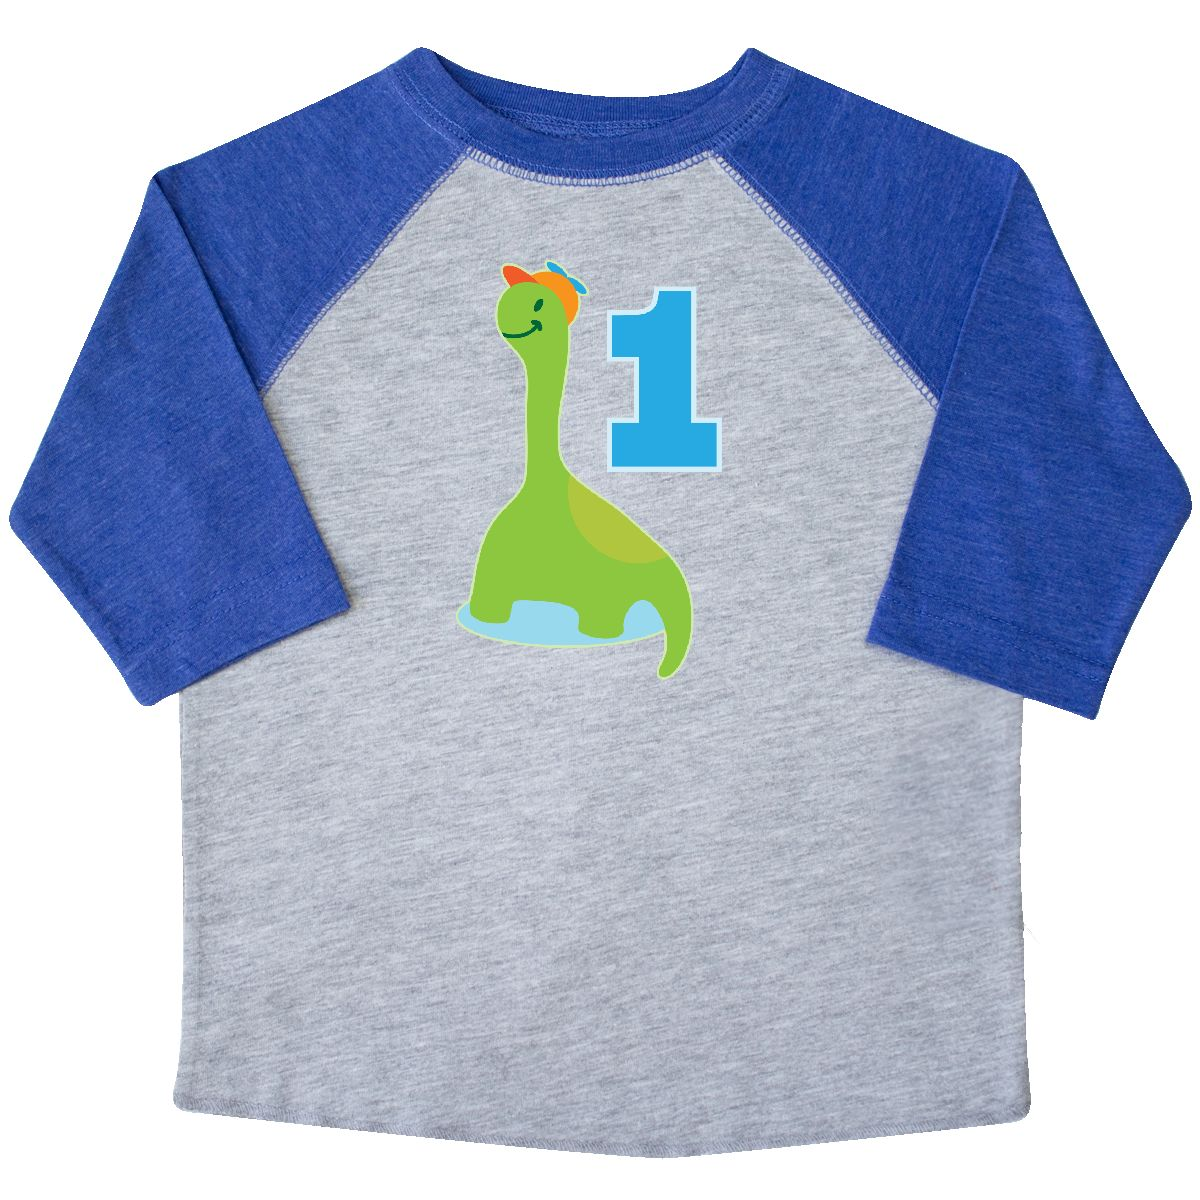 Dinosaur Boys 1st Birthday Party Toddler T Shirt Heather And Royal 2T